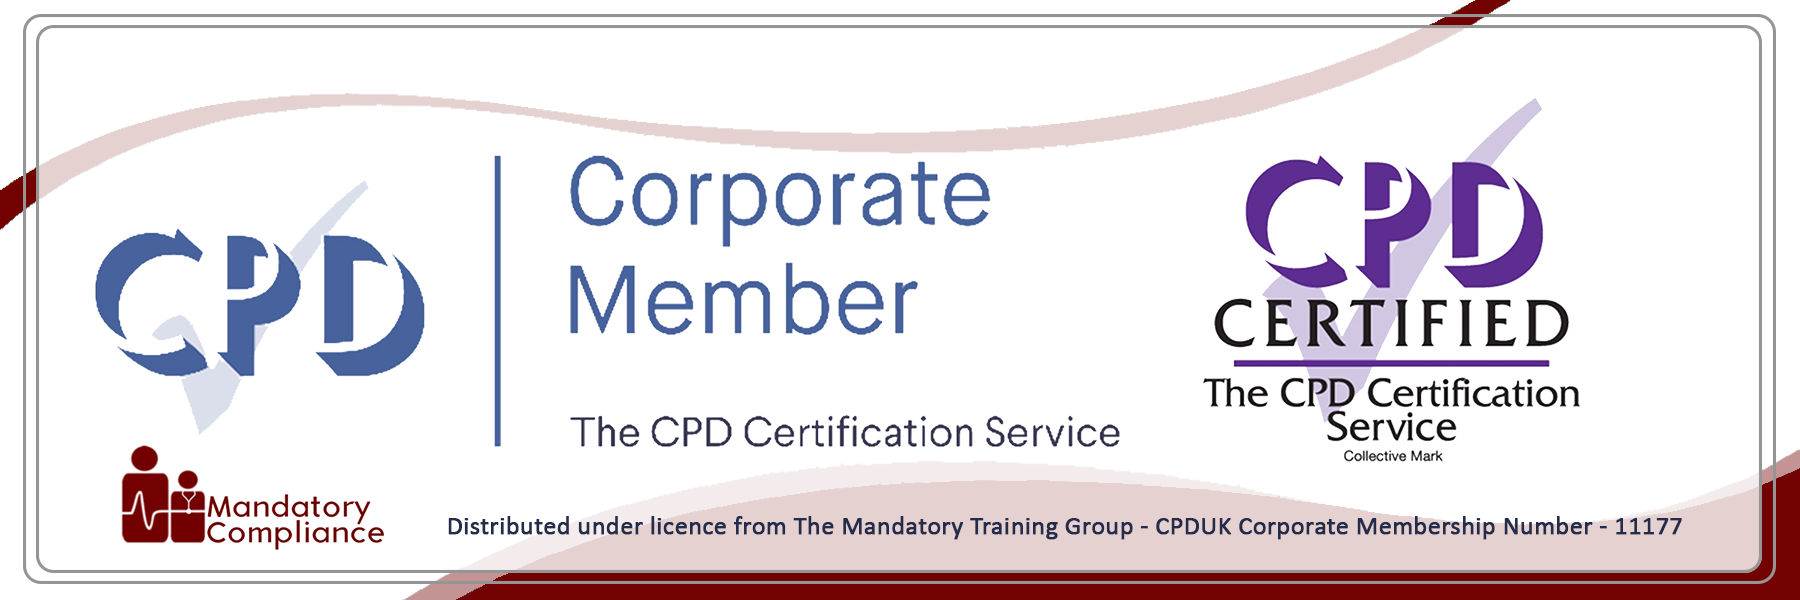 Customer Service - Online Training Course - CPDUK Accredited - Mandatory Compliance UK -